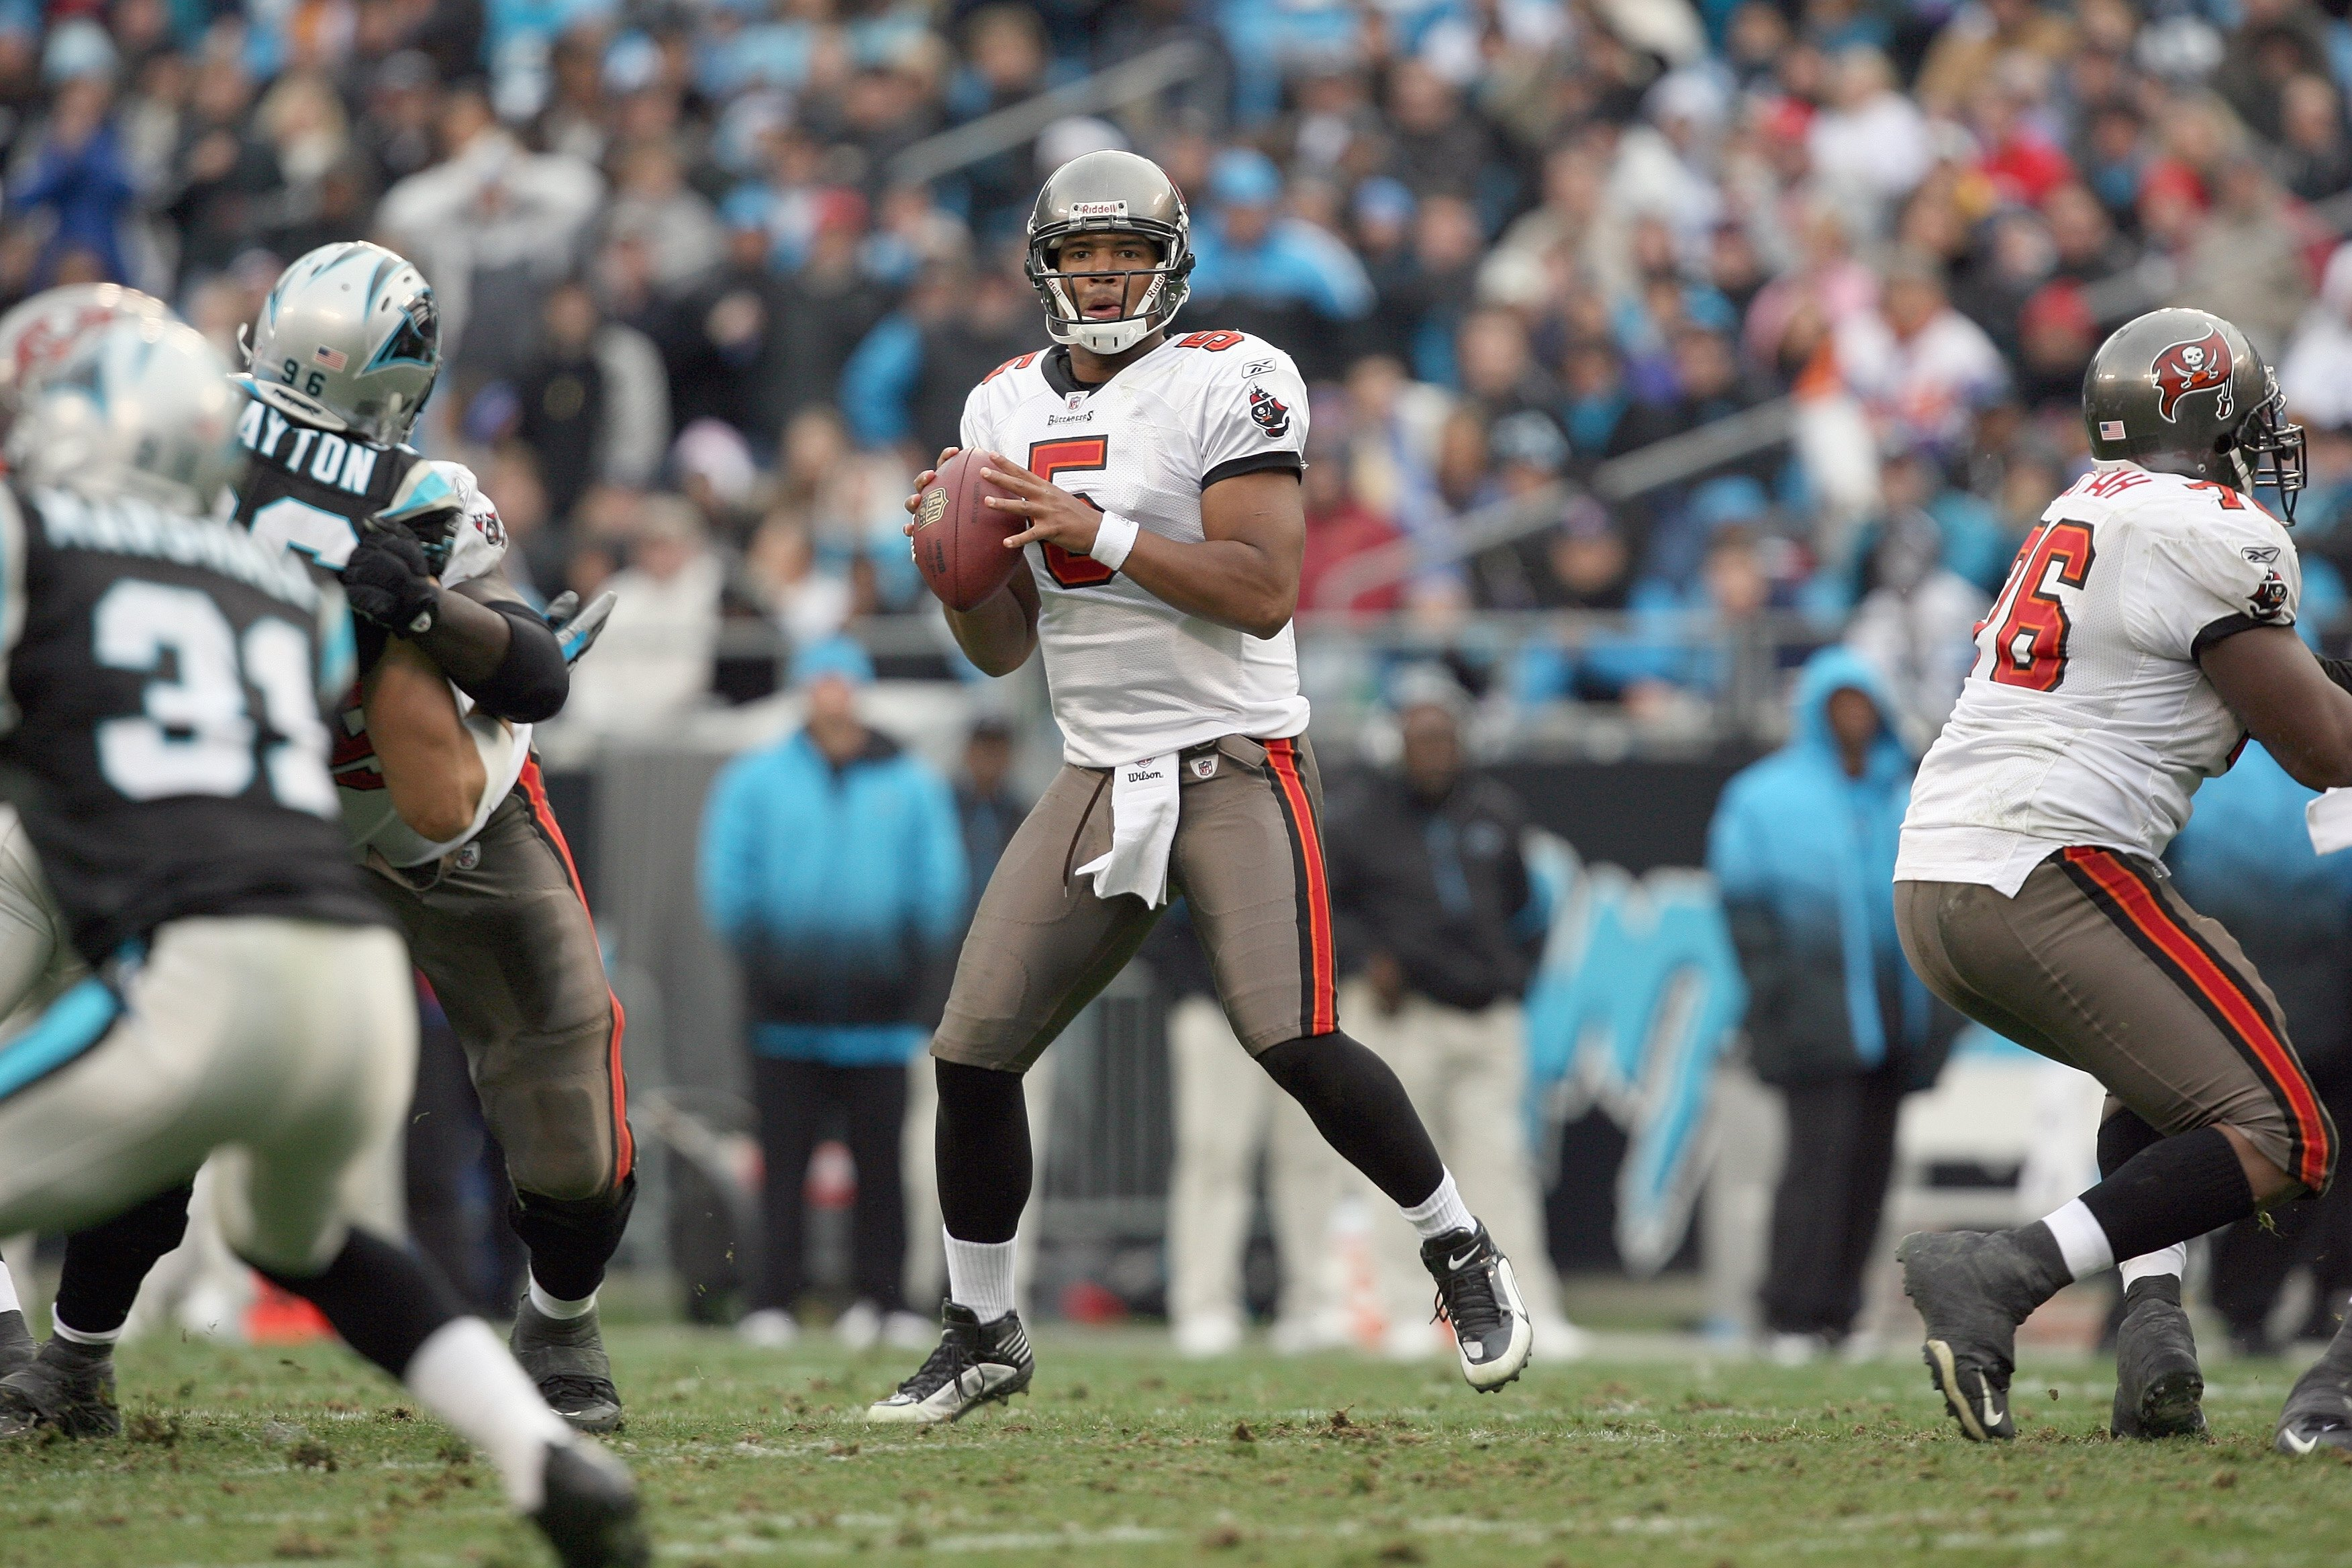 CHARLOTTE, NC - DECEMBER 06:  Josh Freeman #5 of the Tampa Bay Buccaneers looks to pass during the game against the Carolina Panthers at Bank of America Stadium on December 6, 2009 in Charlotte, North Carolina.  (Photo by Streeter Lecka/Getty Images)